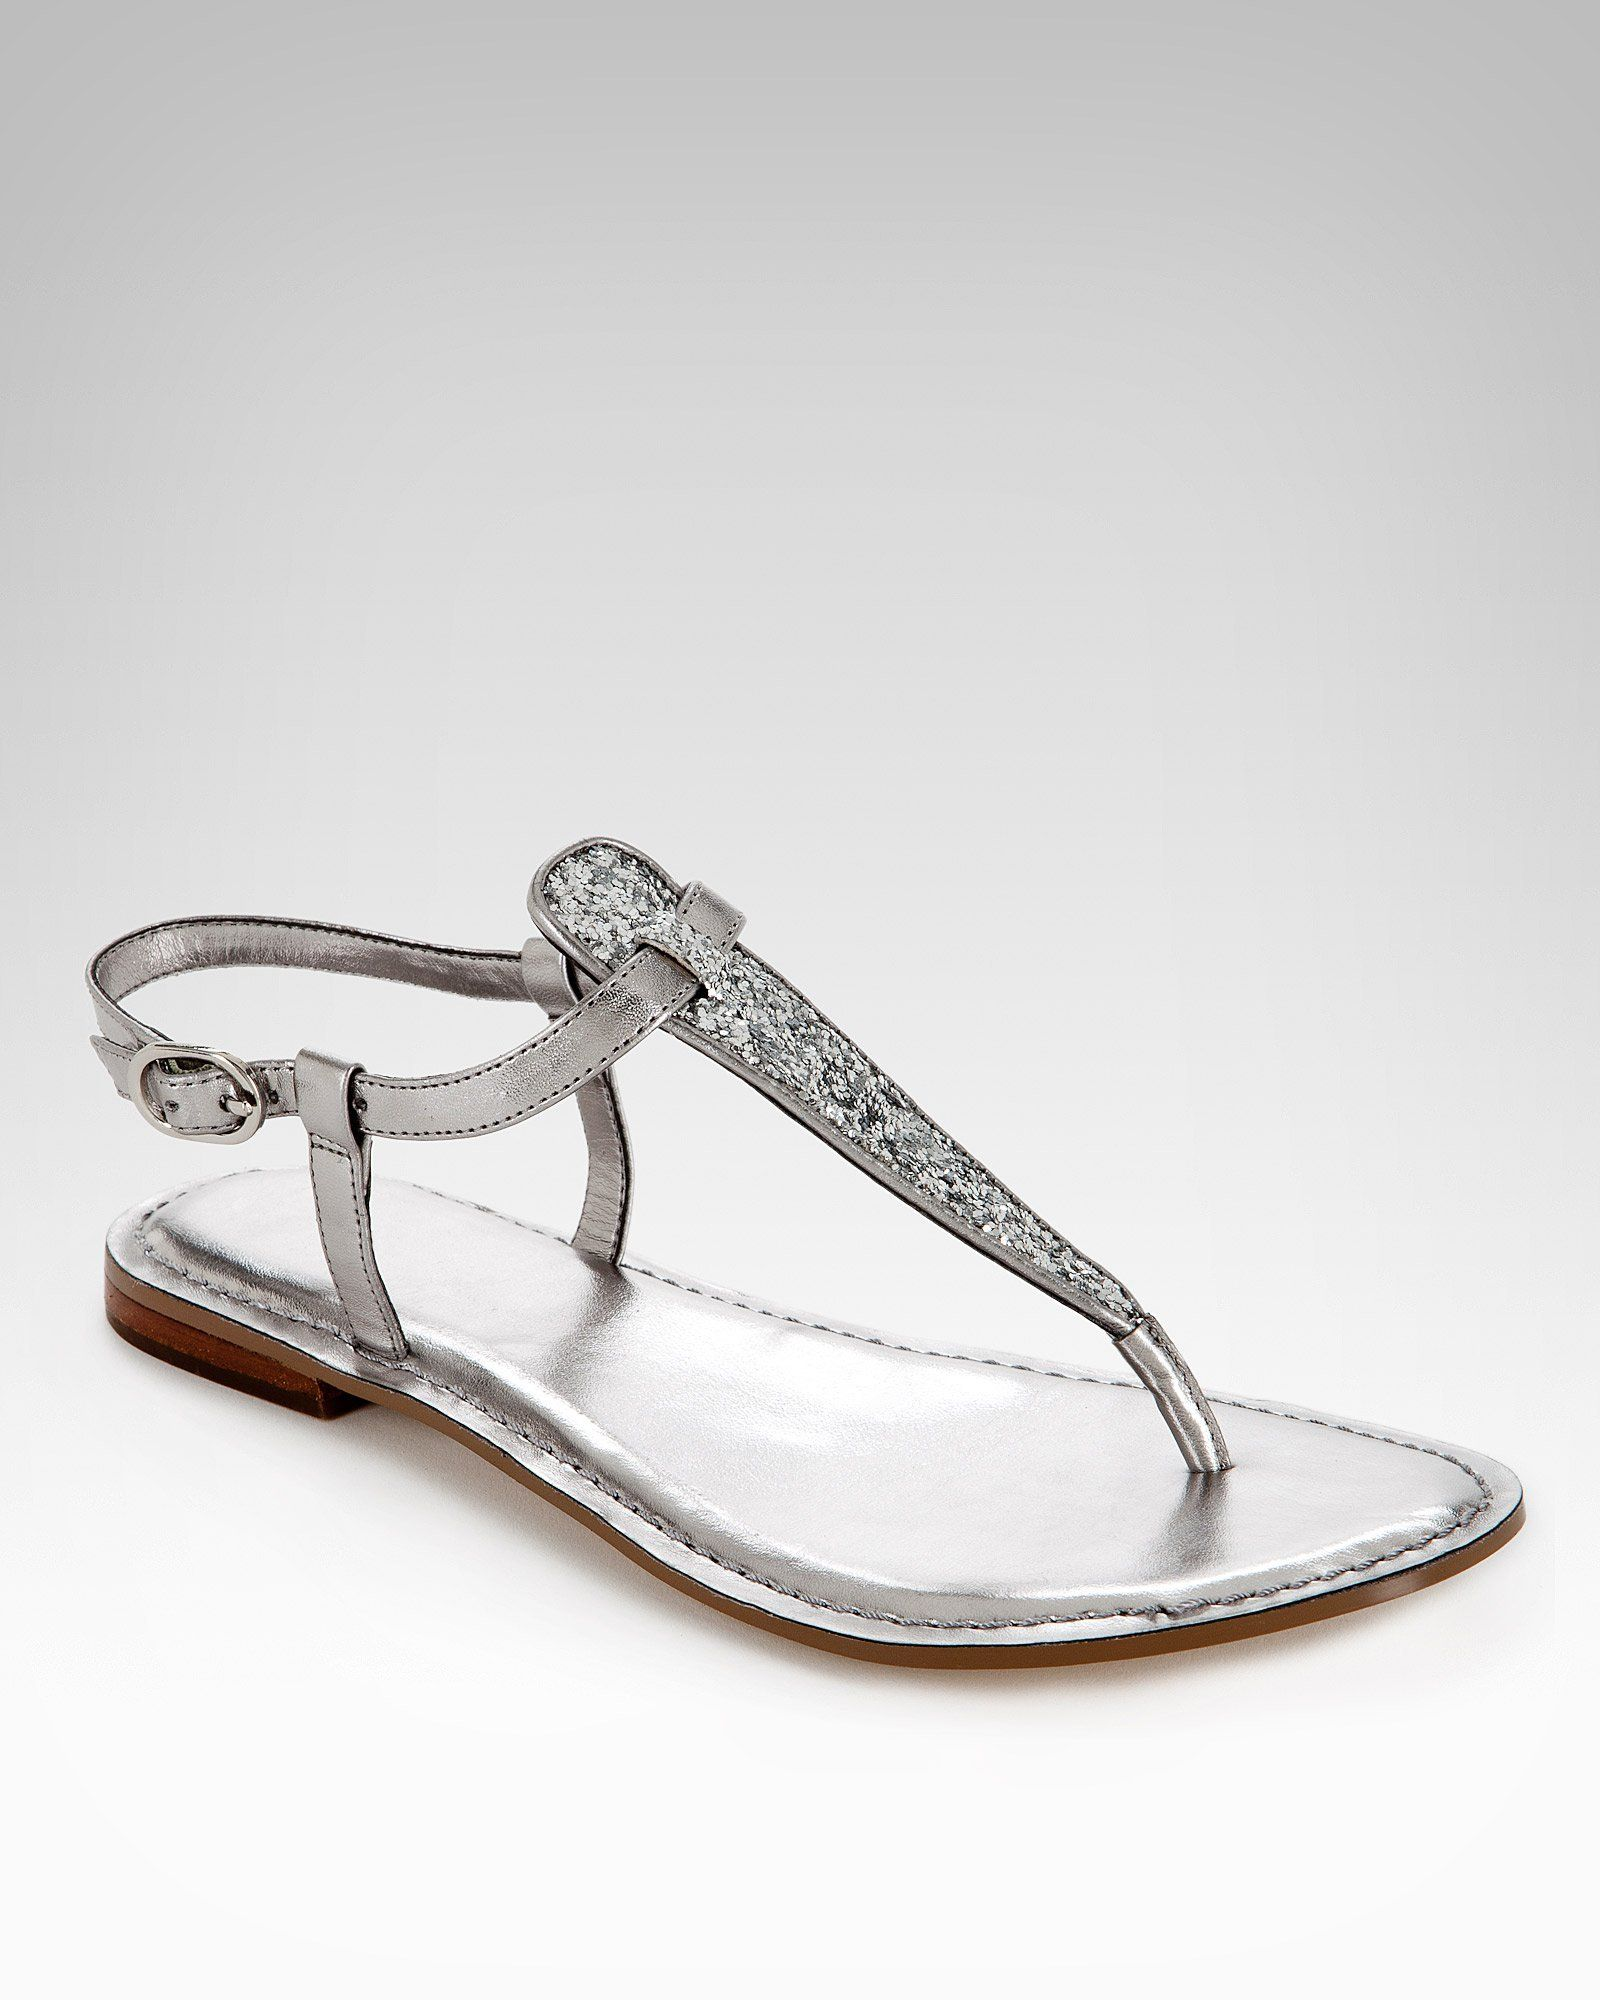 d36d9fb9bc27ea Sexy Summer Sandals  bebe  wishesanddreams Tatiana Glitter T-Strap Sandal  (perfect for the casual day outfit or dressy at night LOVE!)